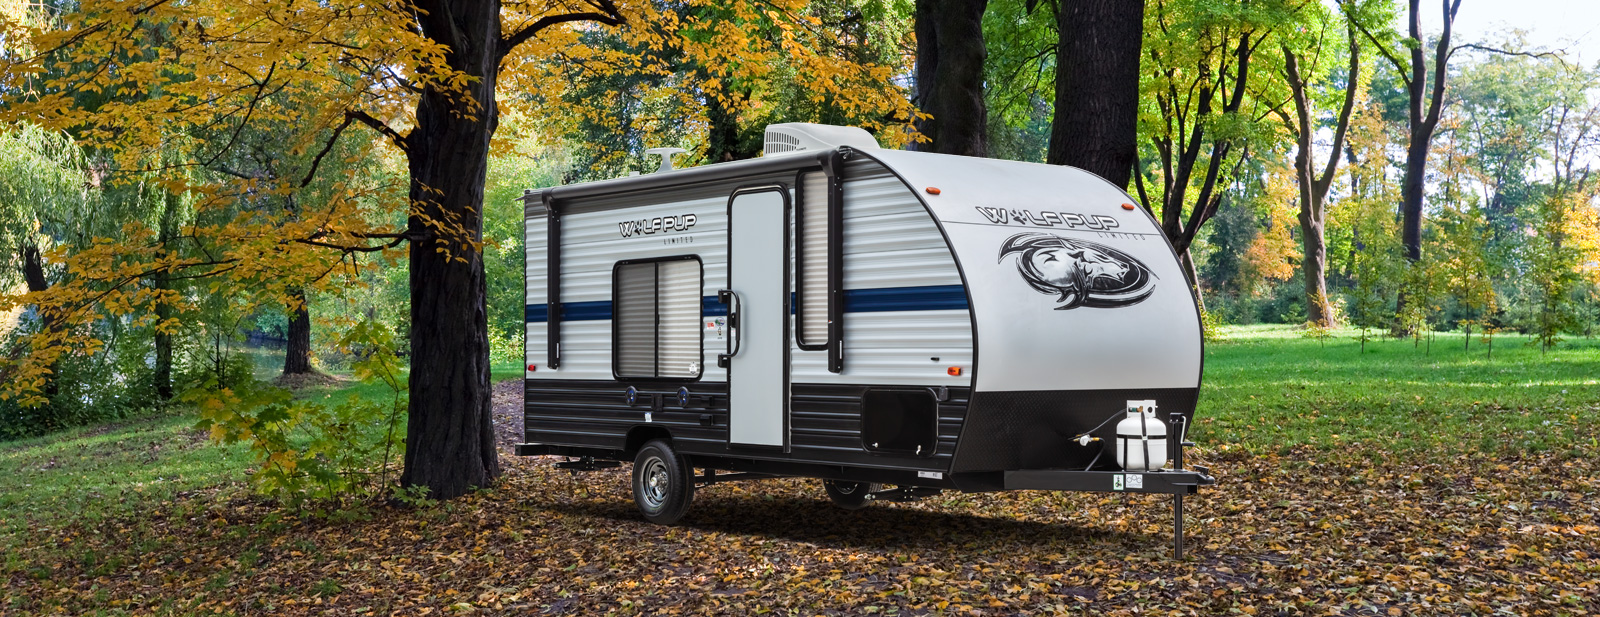 Wolf Pup West | Forest River RV - Manufacturer of Travel